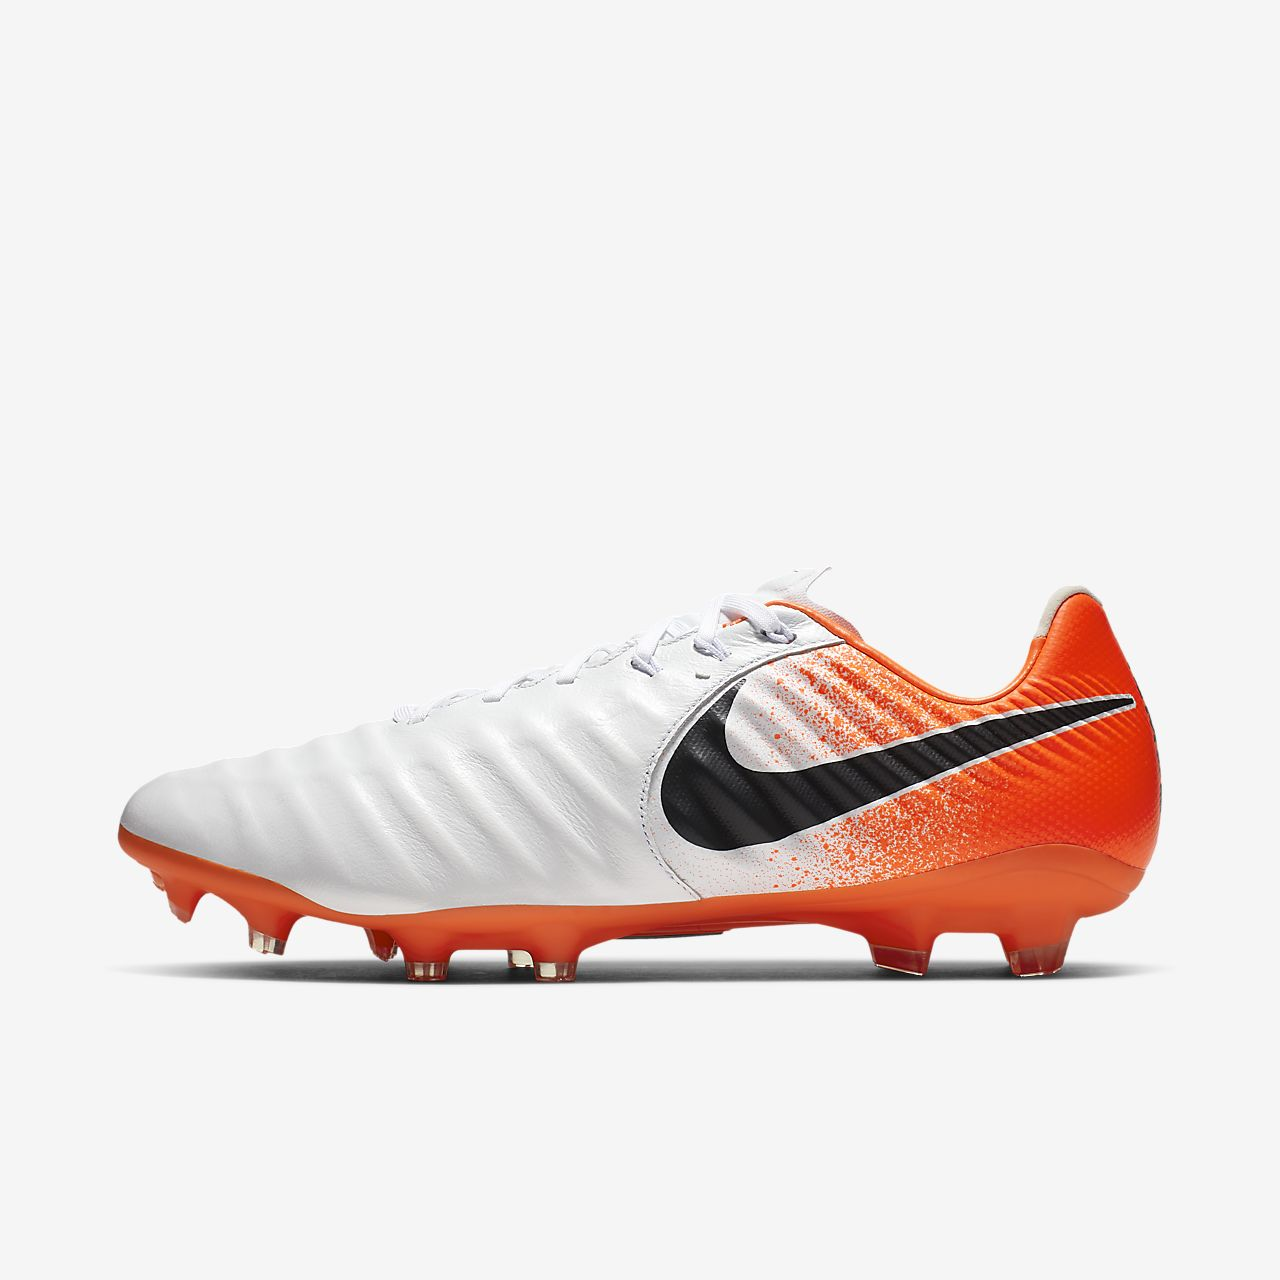 f4f74b6e1 Nike Legend 7 Pro FG Firm-Ground Soccer Cleat. Nike.com